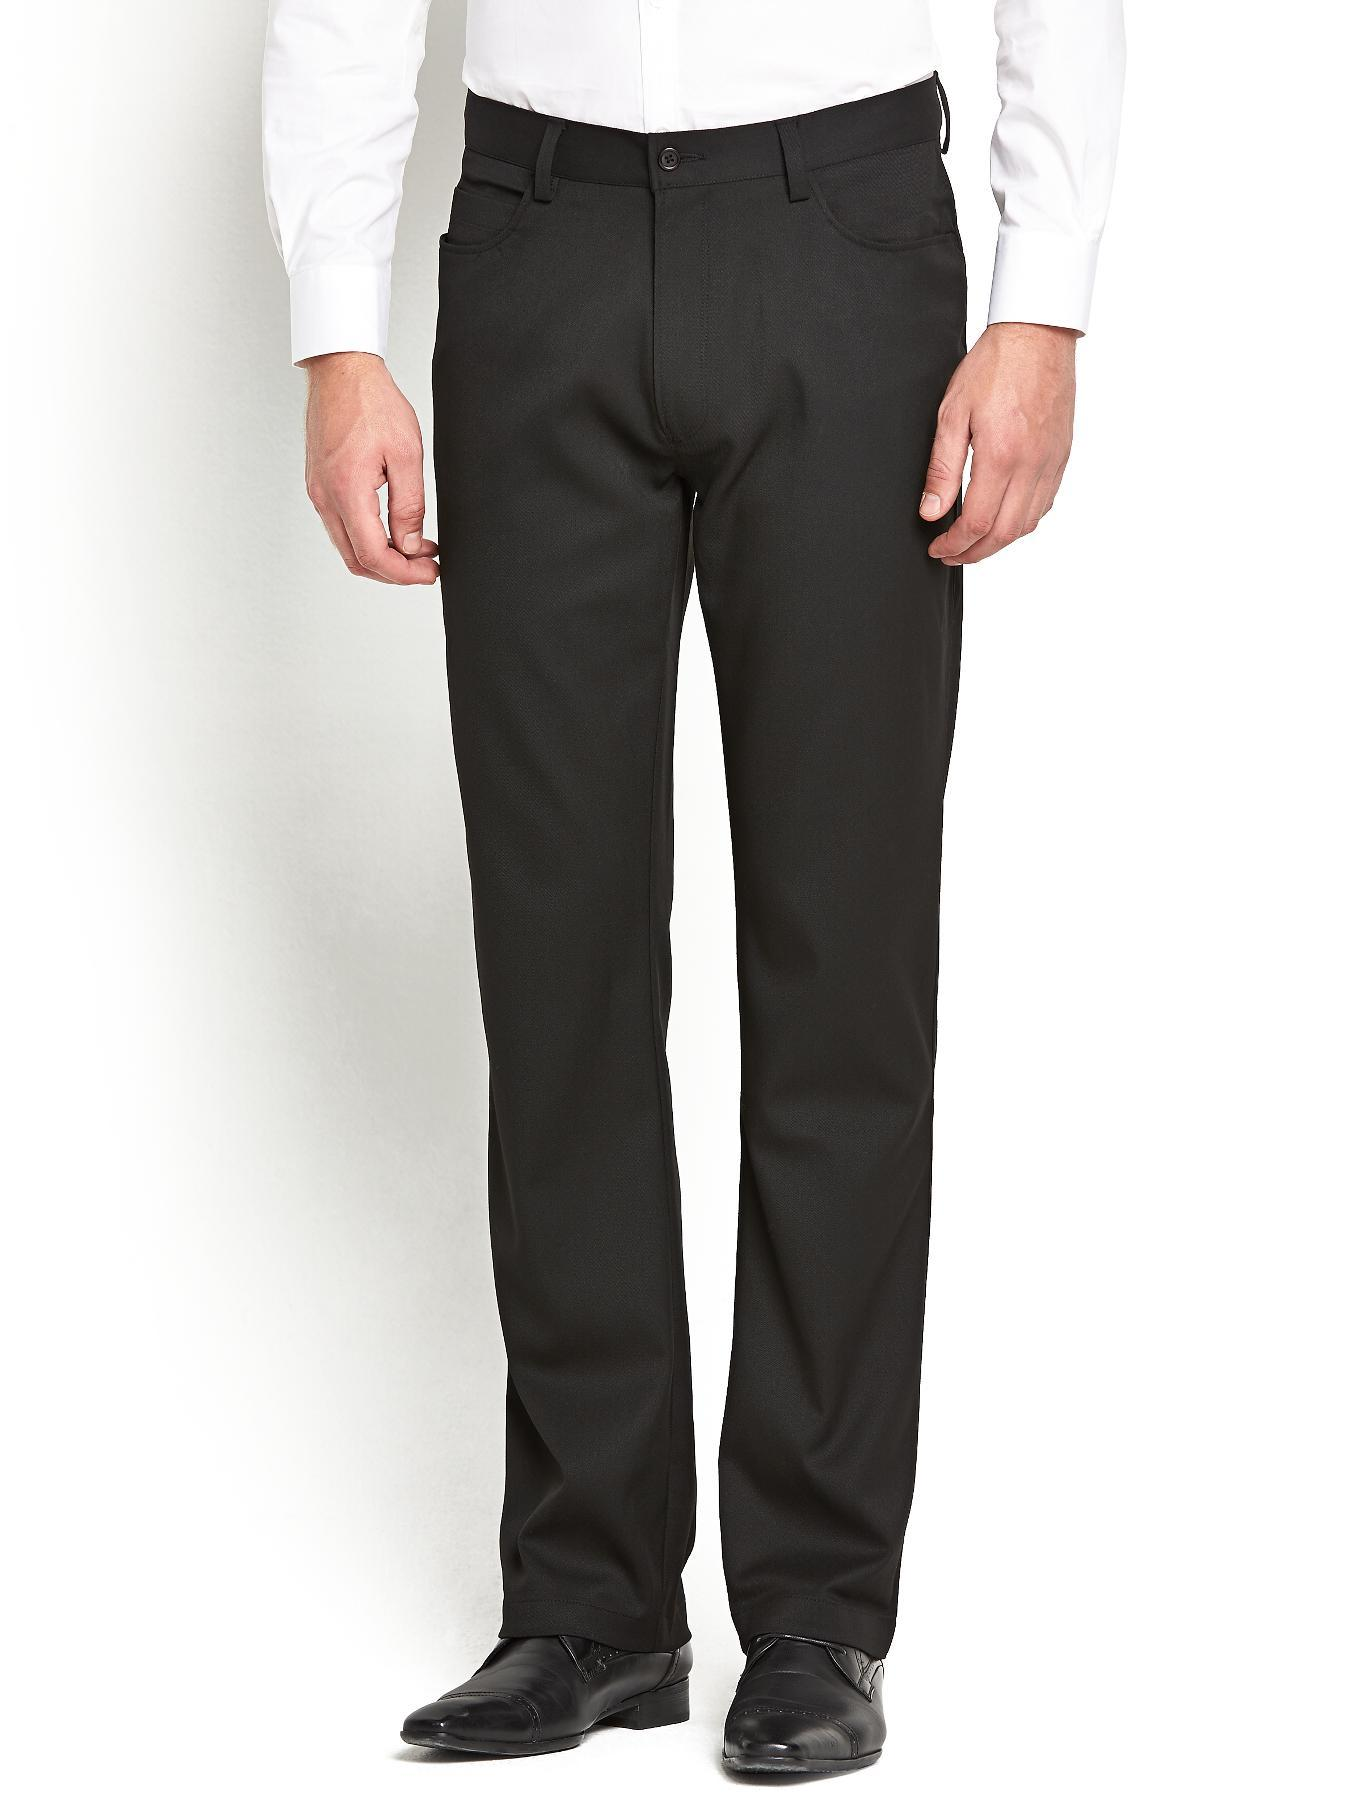 Taylor & Reece Mens 5 Pocket Trousers - Black, Black